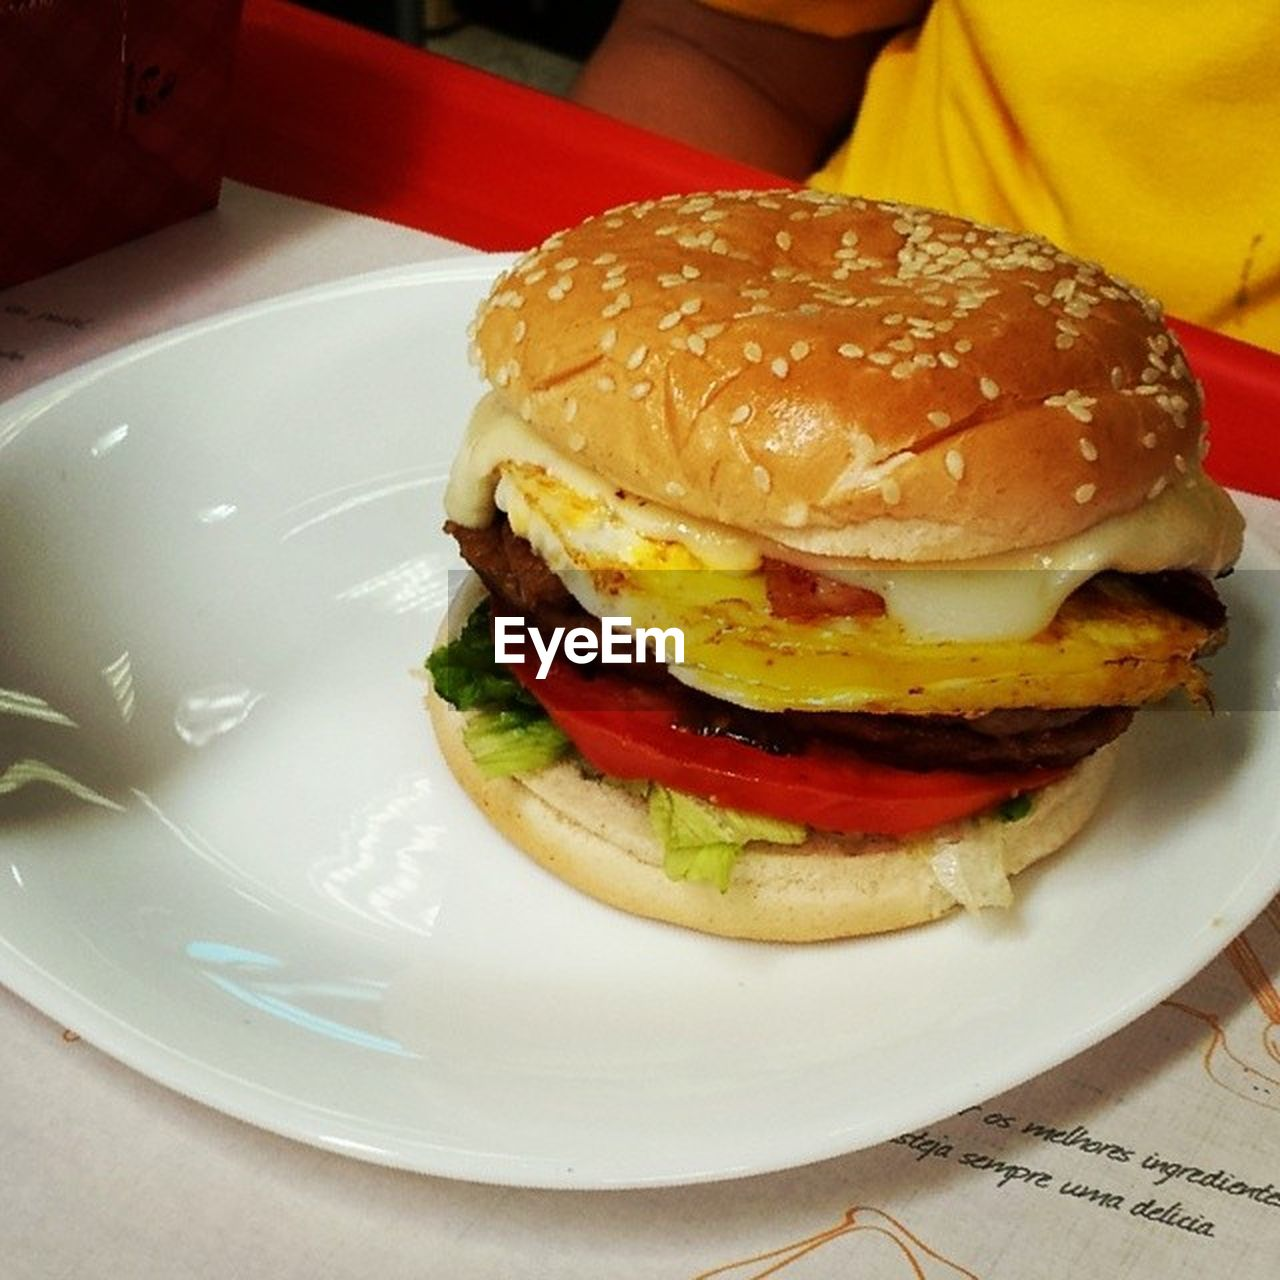 food, food and drink, burger, unhealthy eating, hamburger, plate, indoors, bun, fast food, ready-to-eat, indulgence, table, freshness, fried, meat, meal, serving size, take out food, close-up, no people, day